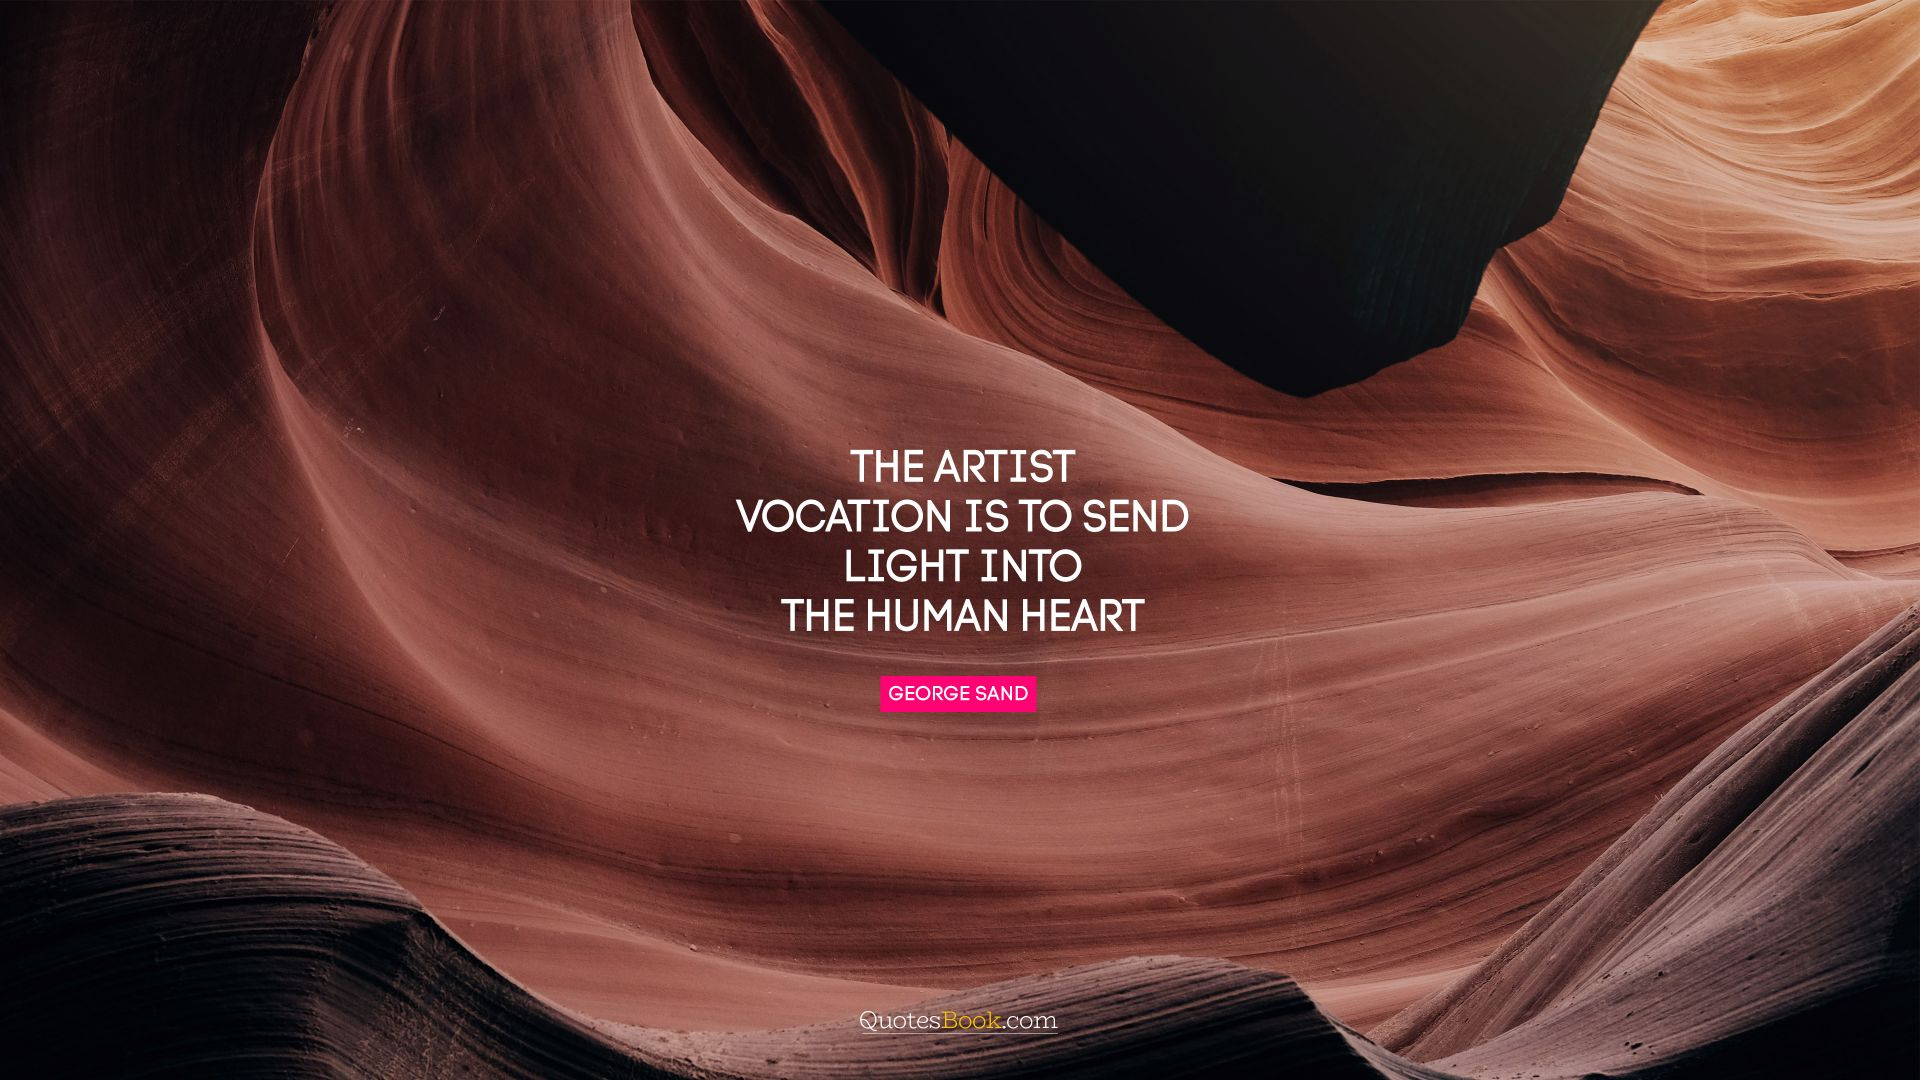 The artist vocation is to send light into the human heart. - Quote by George Sand